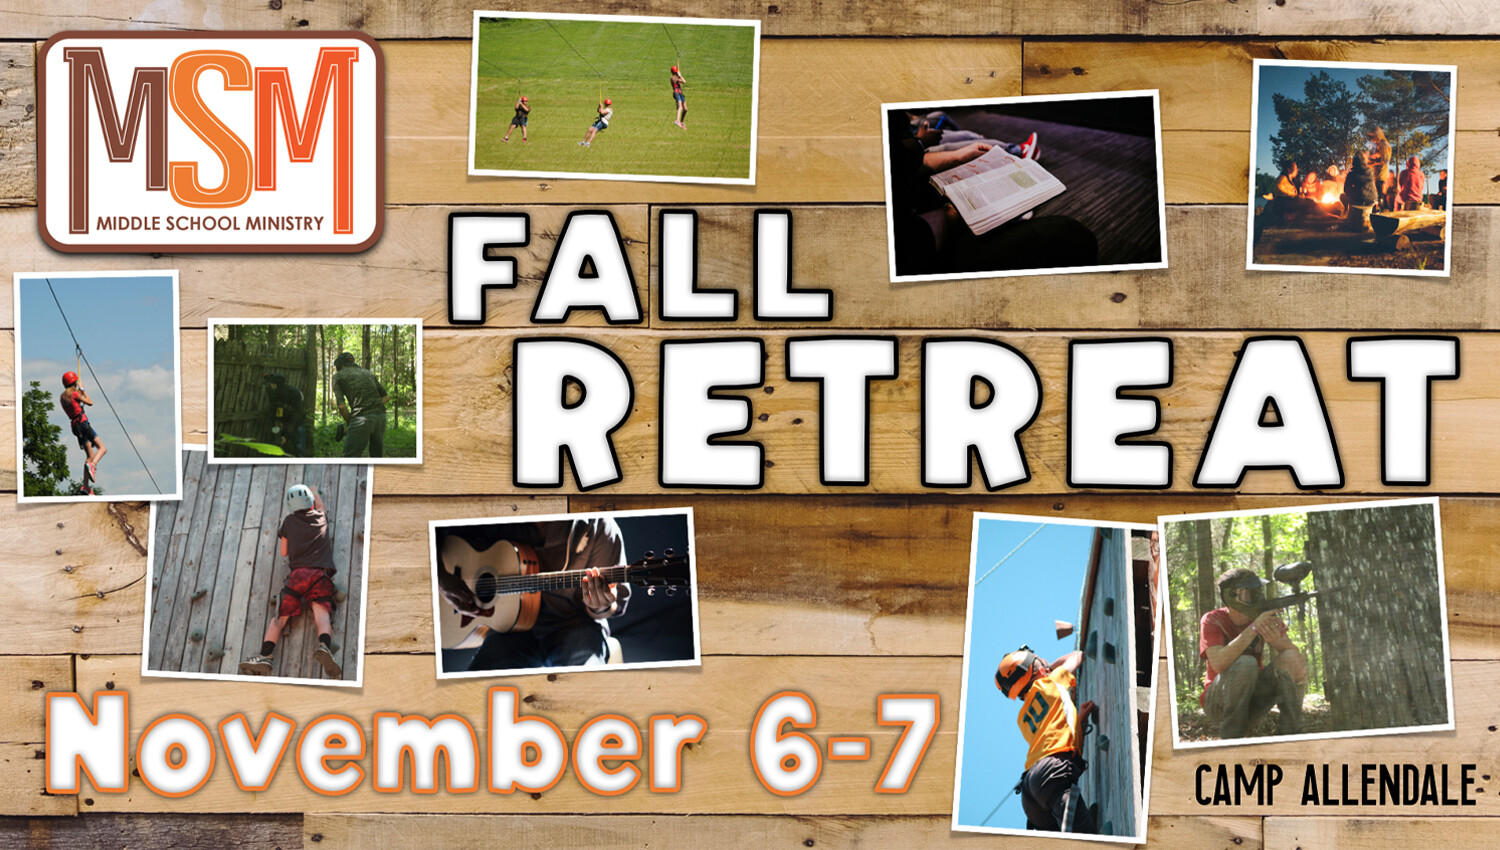 Middle School Ministry Fall Retreat